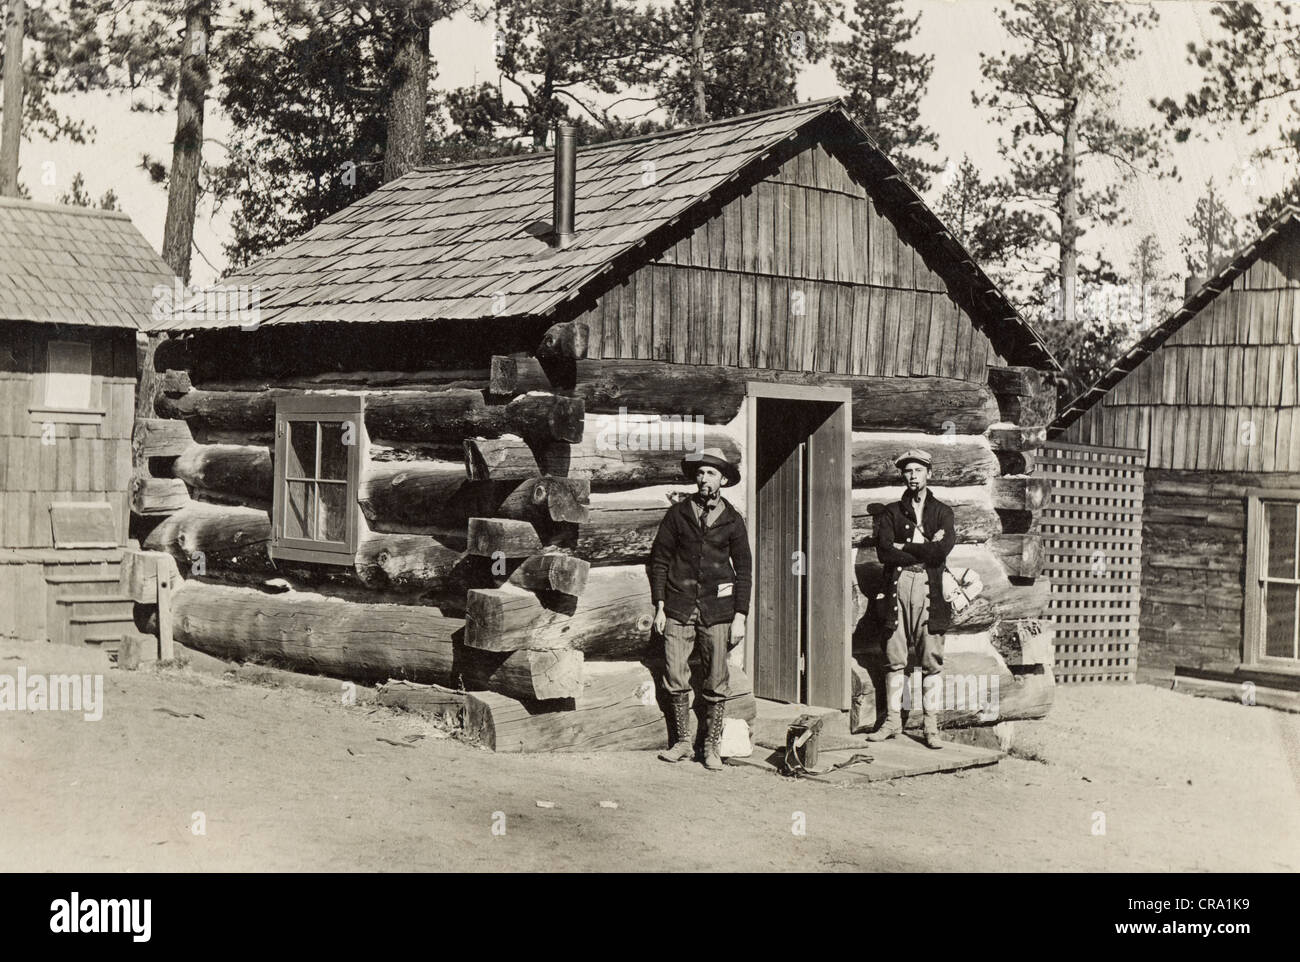 Father & Son in front of Small Log Cabin - Stock Image